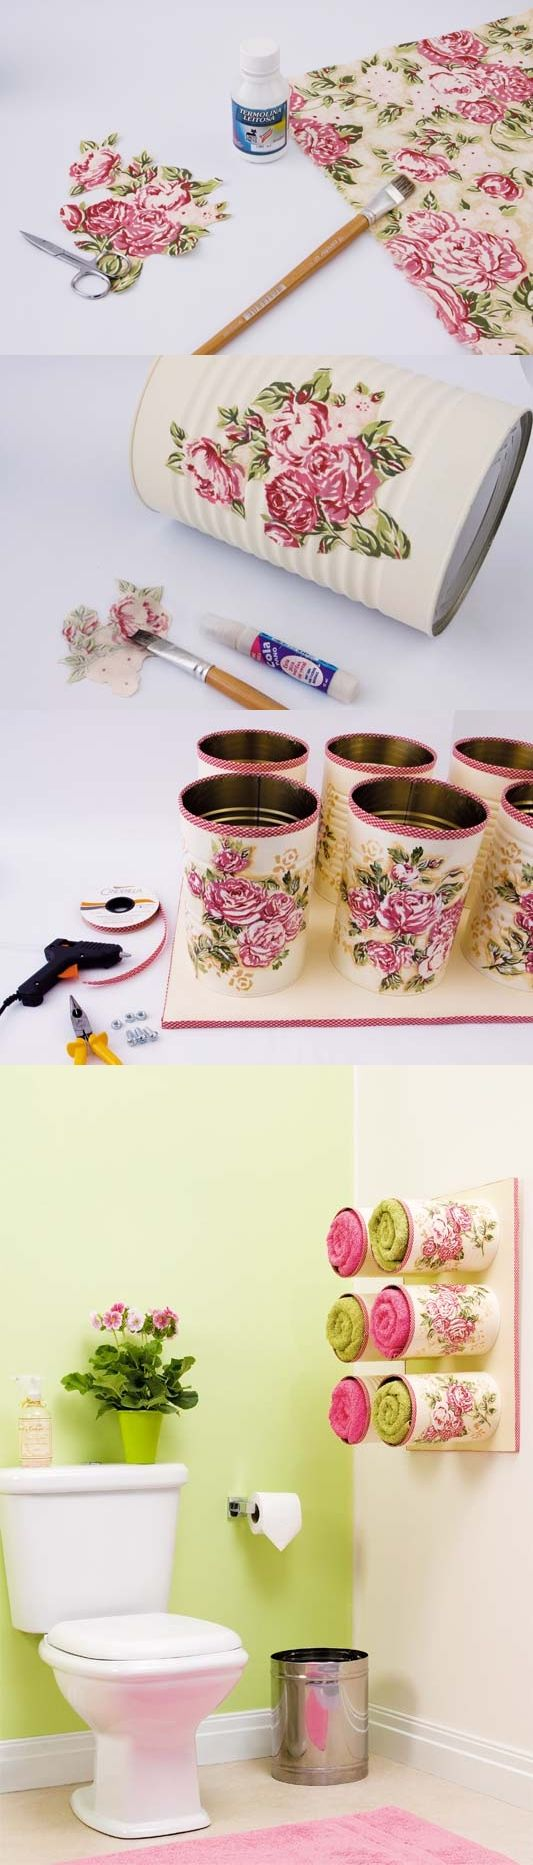 Decoupaged tin cans